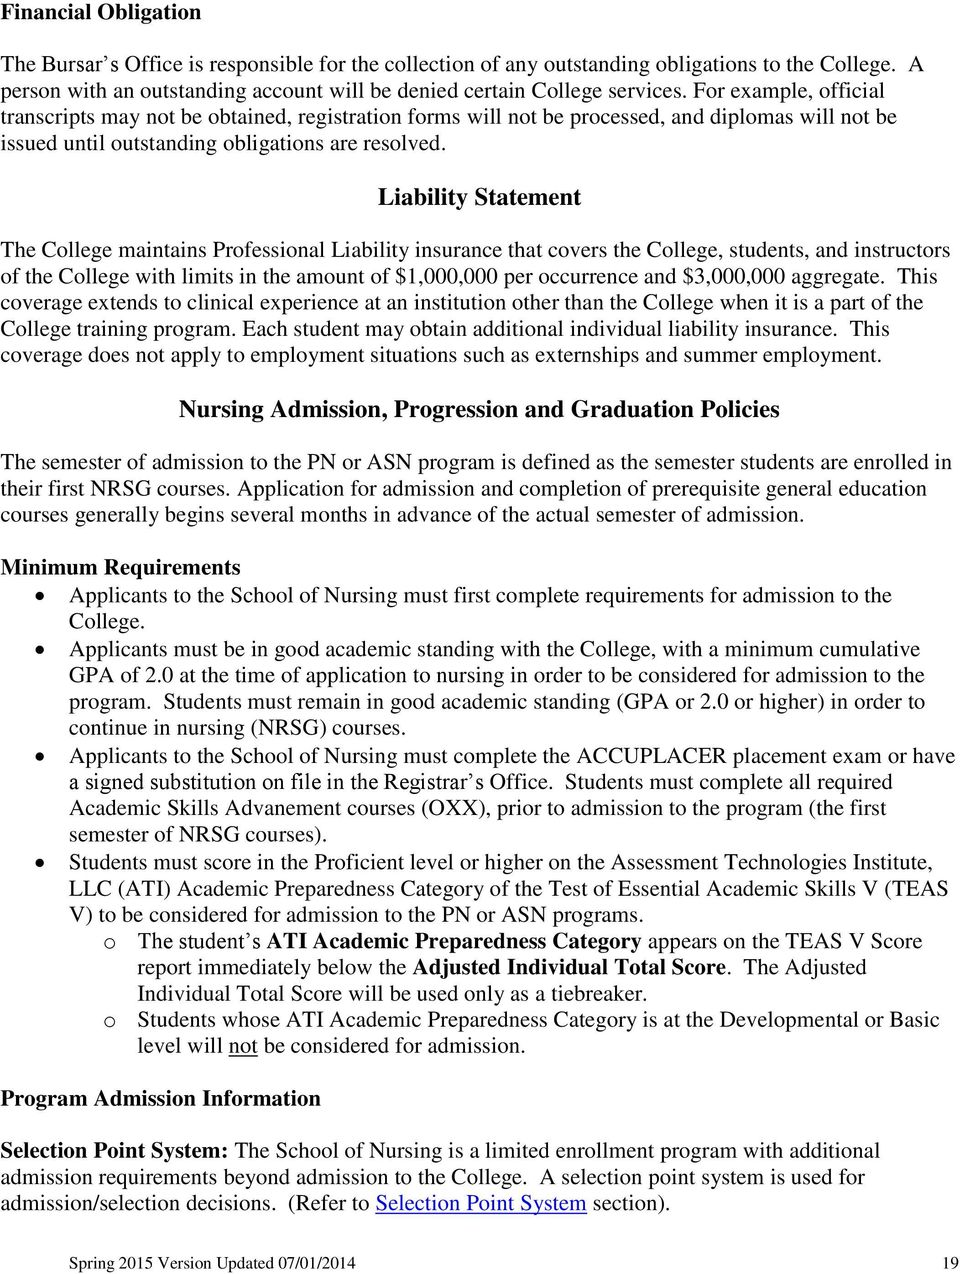 Liability Statement The College maintains Professional Liability insurance that covers the College, students, and instructors of the College with limits in the amount of $1,000,000 per occurrence and